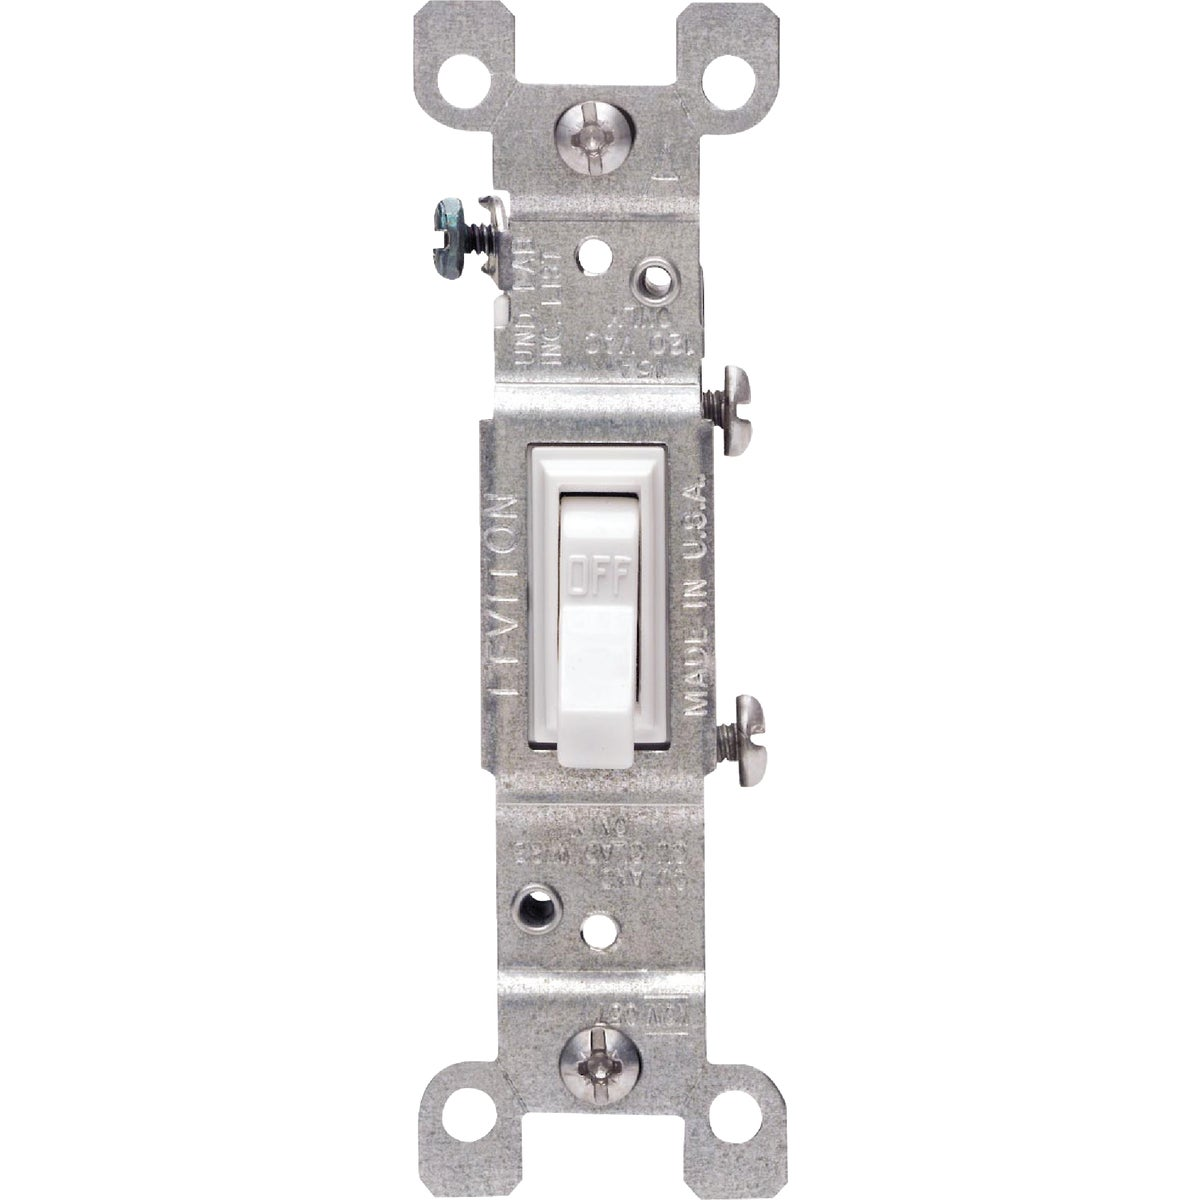 WHT GRND SWITCH - 8781451-2W by Leviton Mfg Co